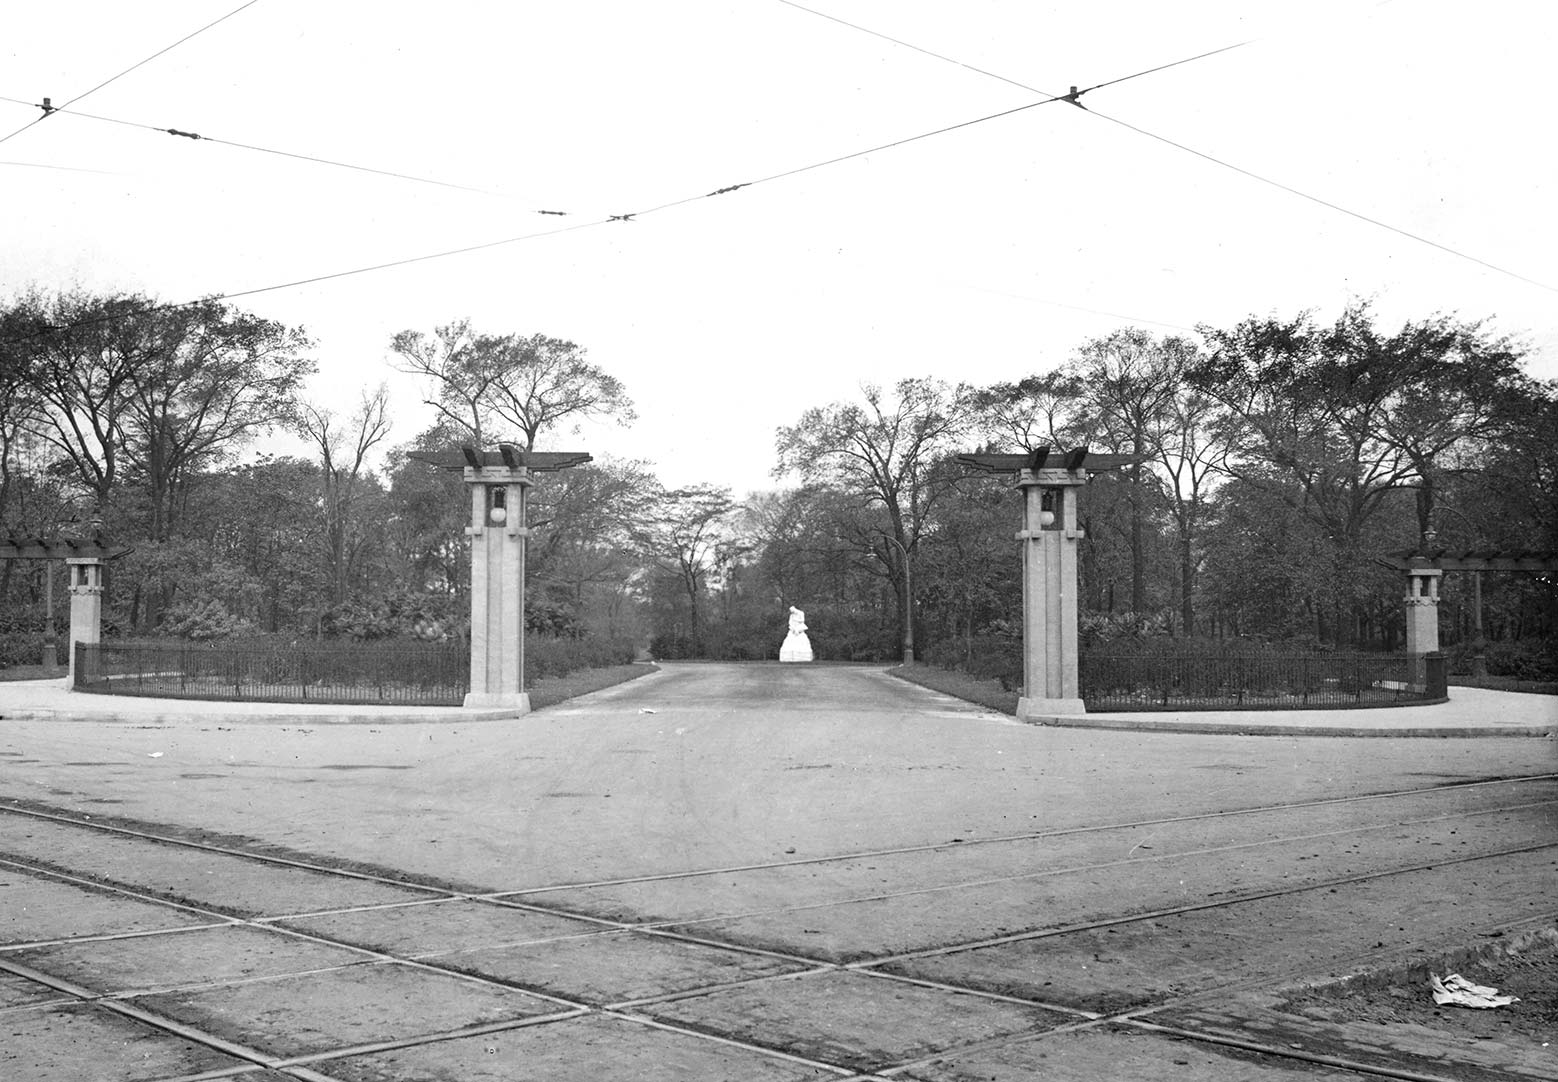 Photograph of Jensen's improvements to the corner of Division St. and California Ave. in Humboldt Park, 1912. Chicago Park District Records: Photographs, Special Collections, Chicago Public Library.